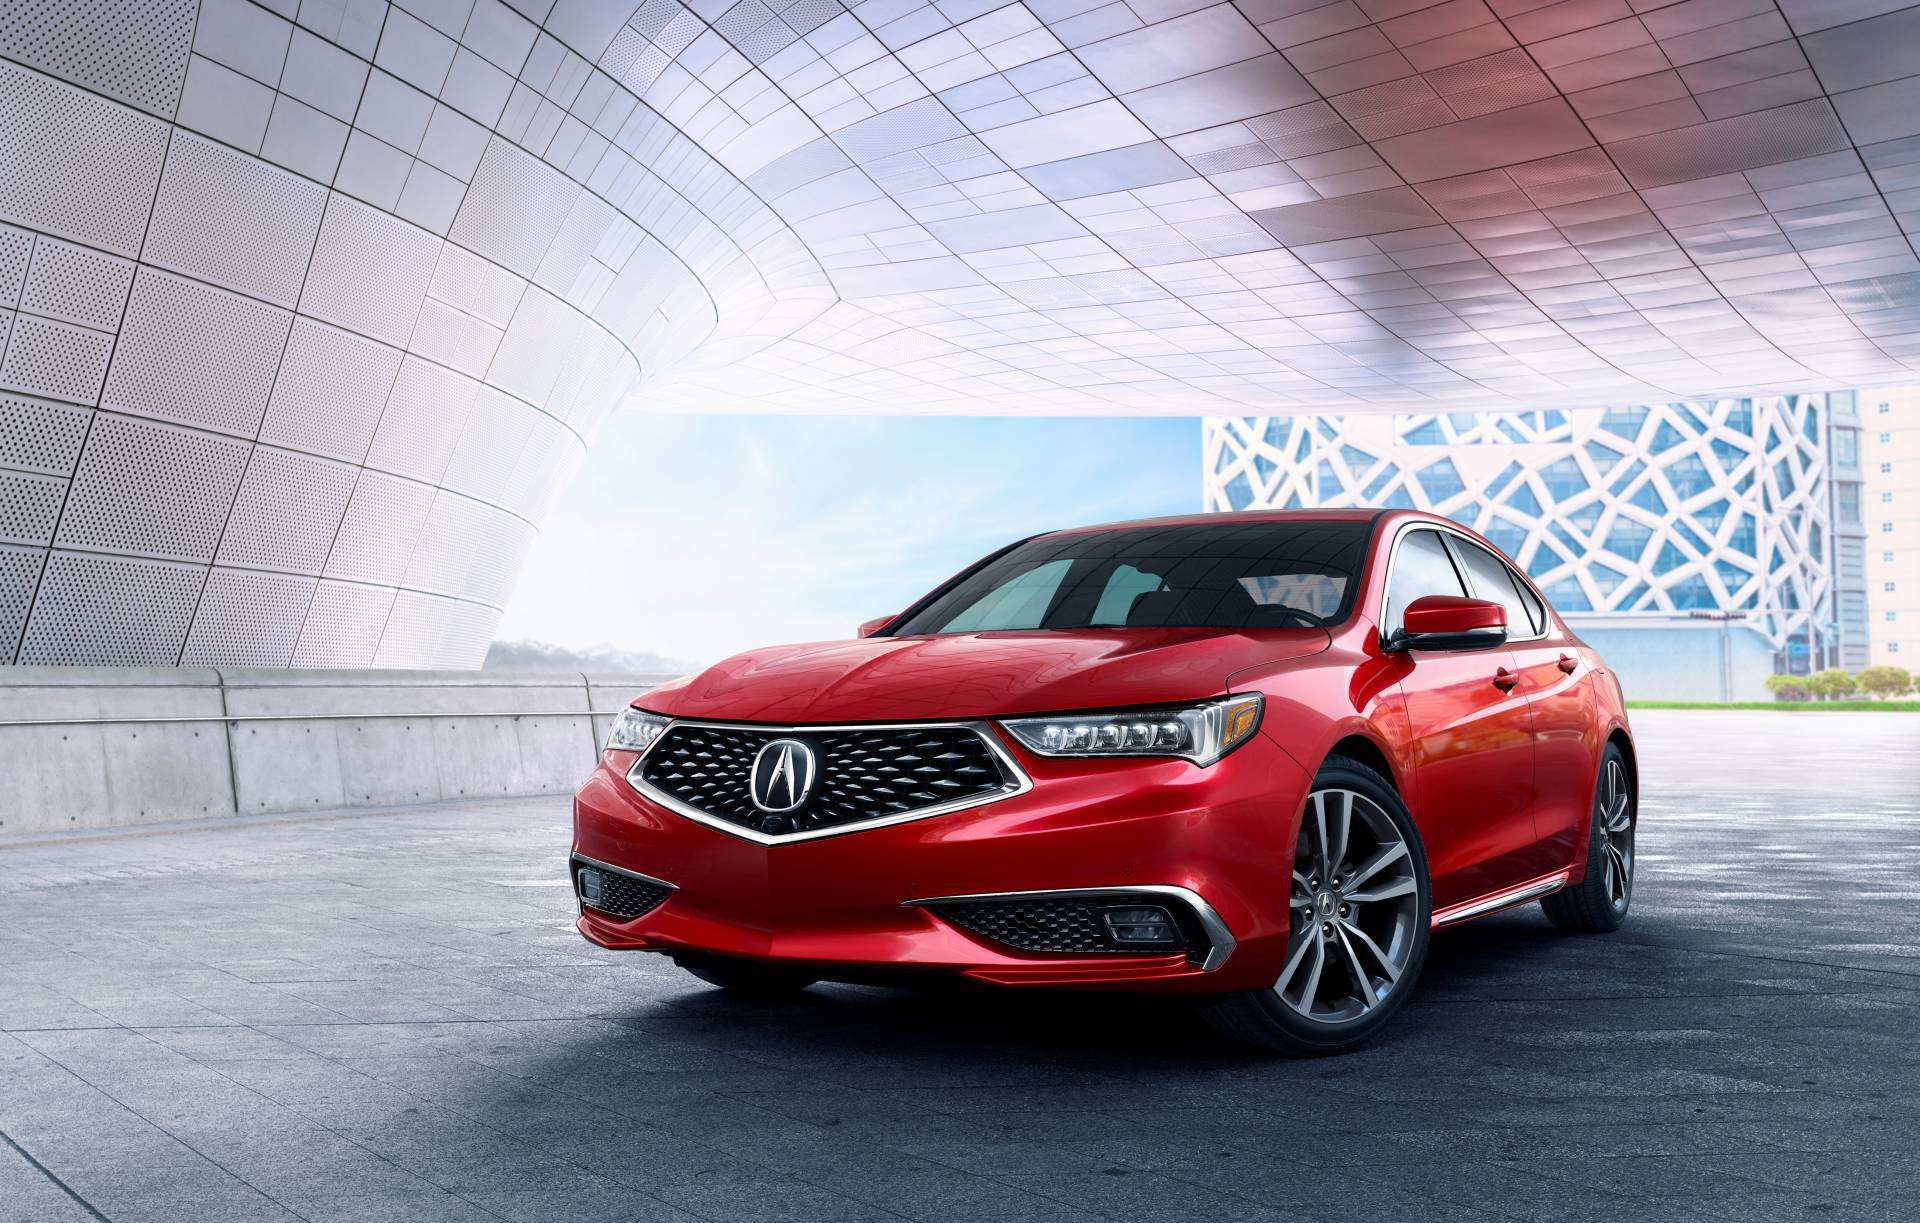 12 Gallery of Acura Lineup 2020 First Drive with Acura Lineup 2020